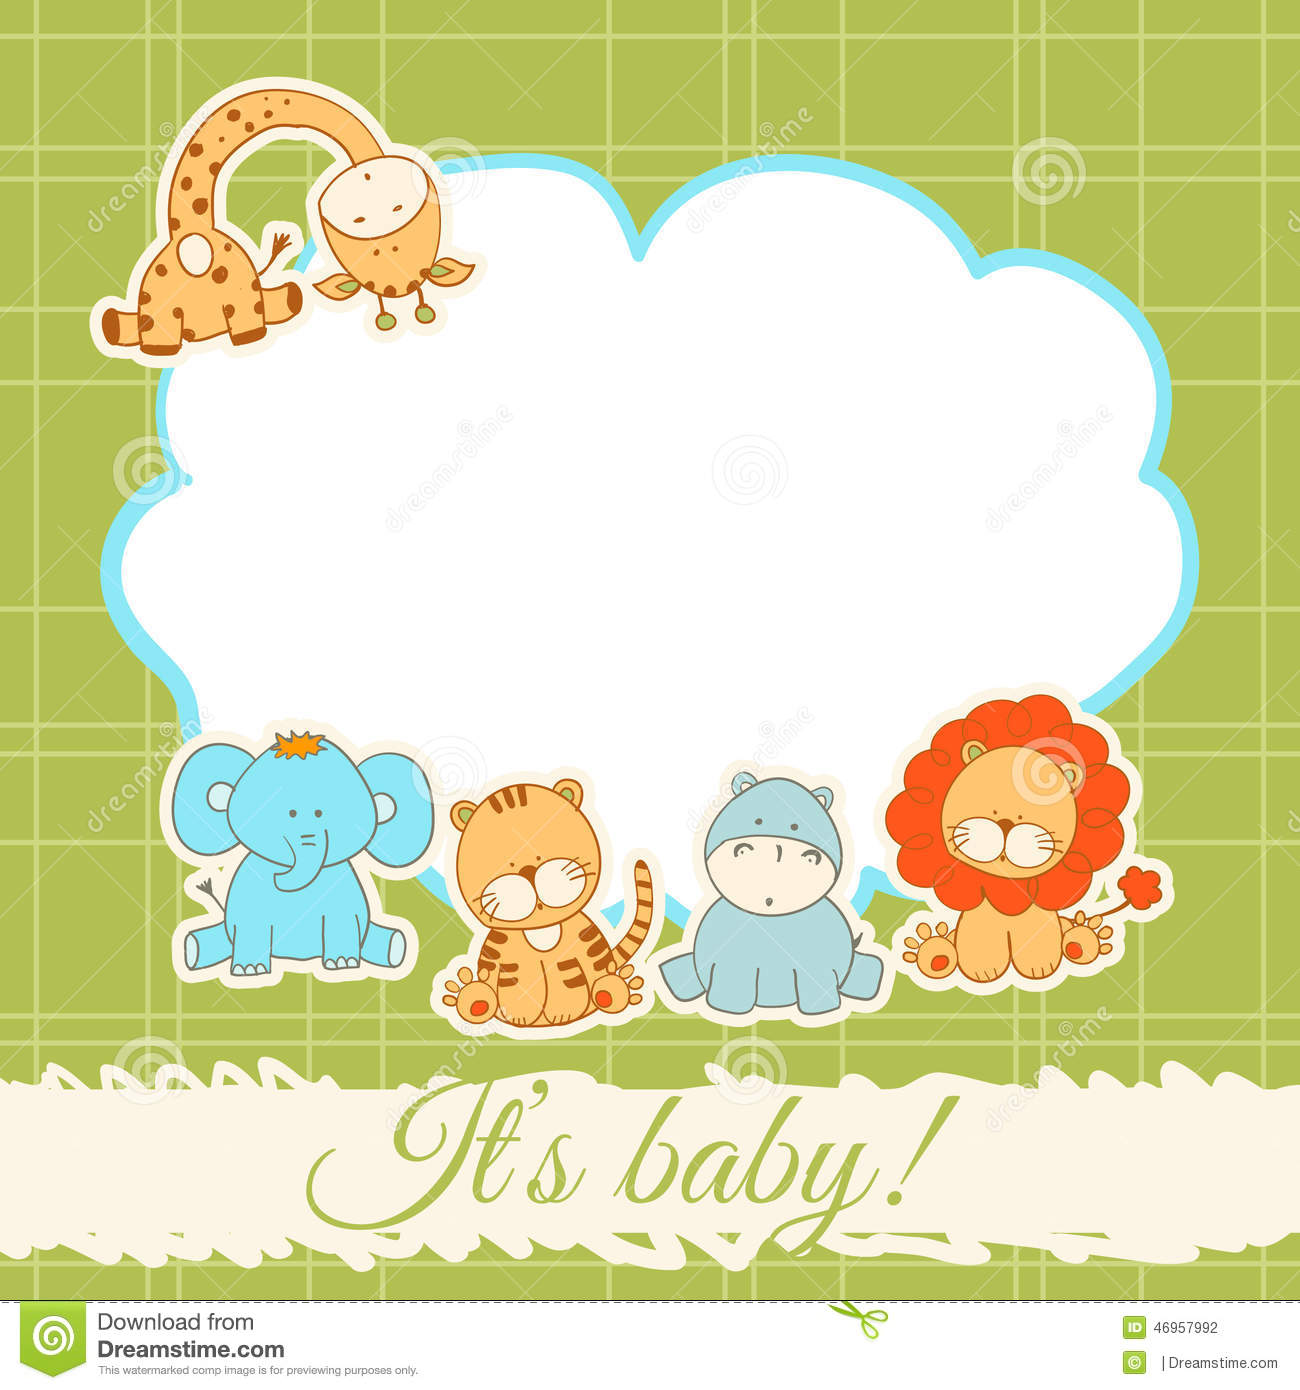 Baby Animal Cartoon Stock Photos and Images